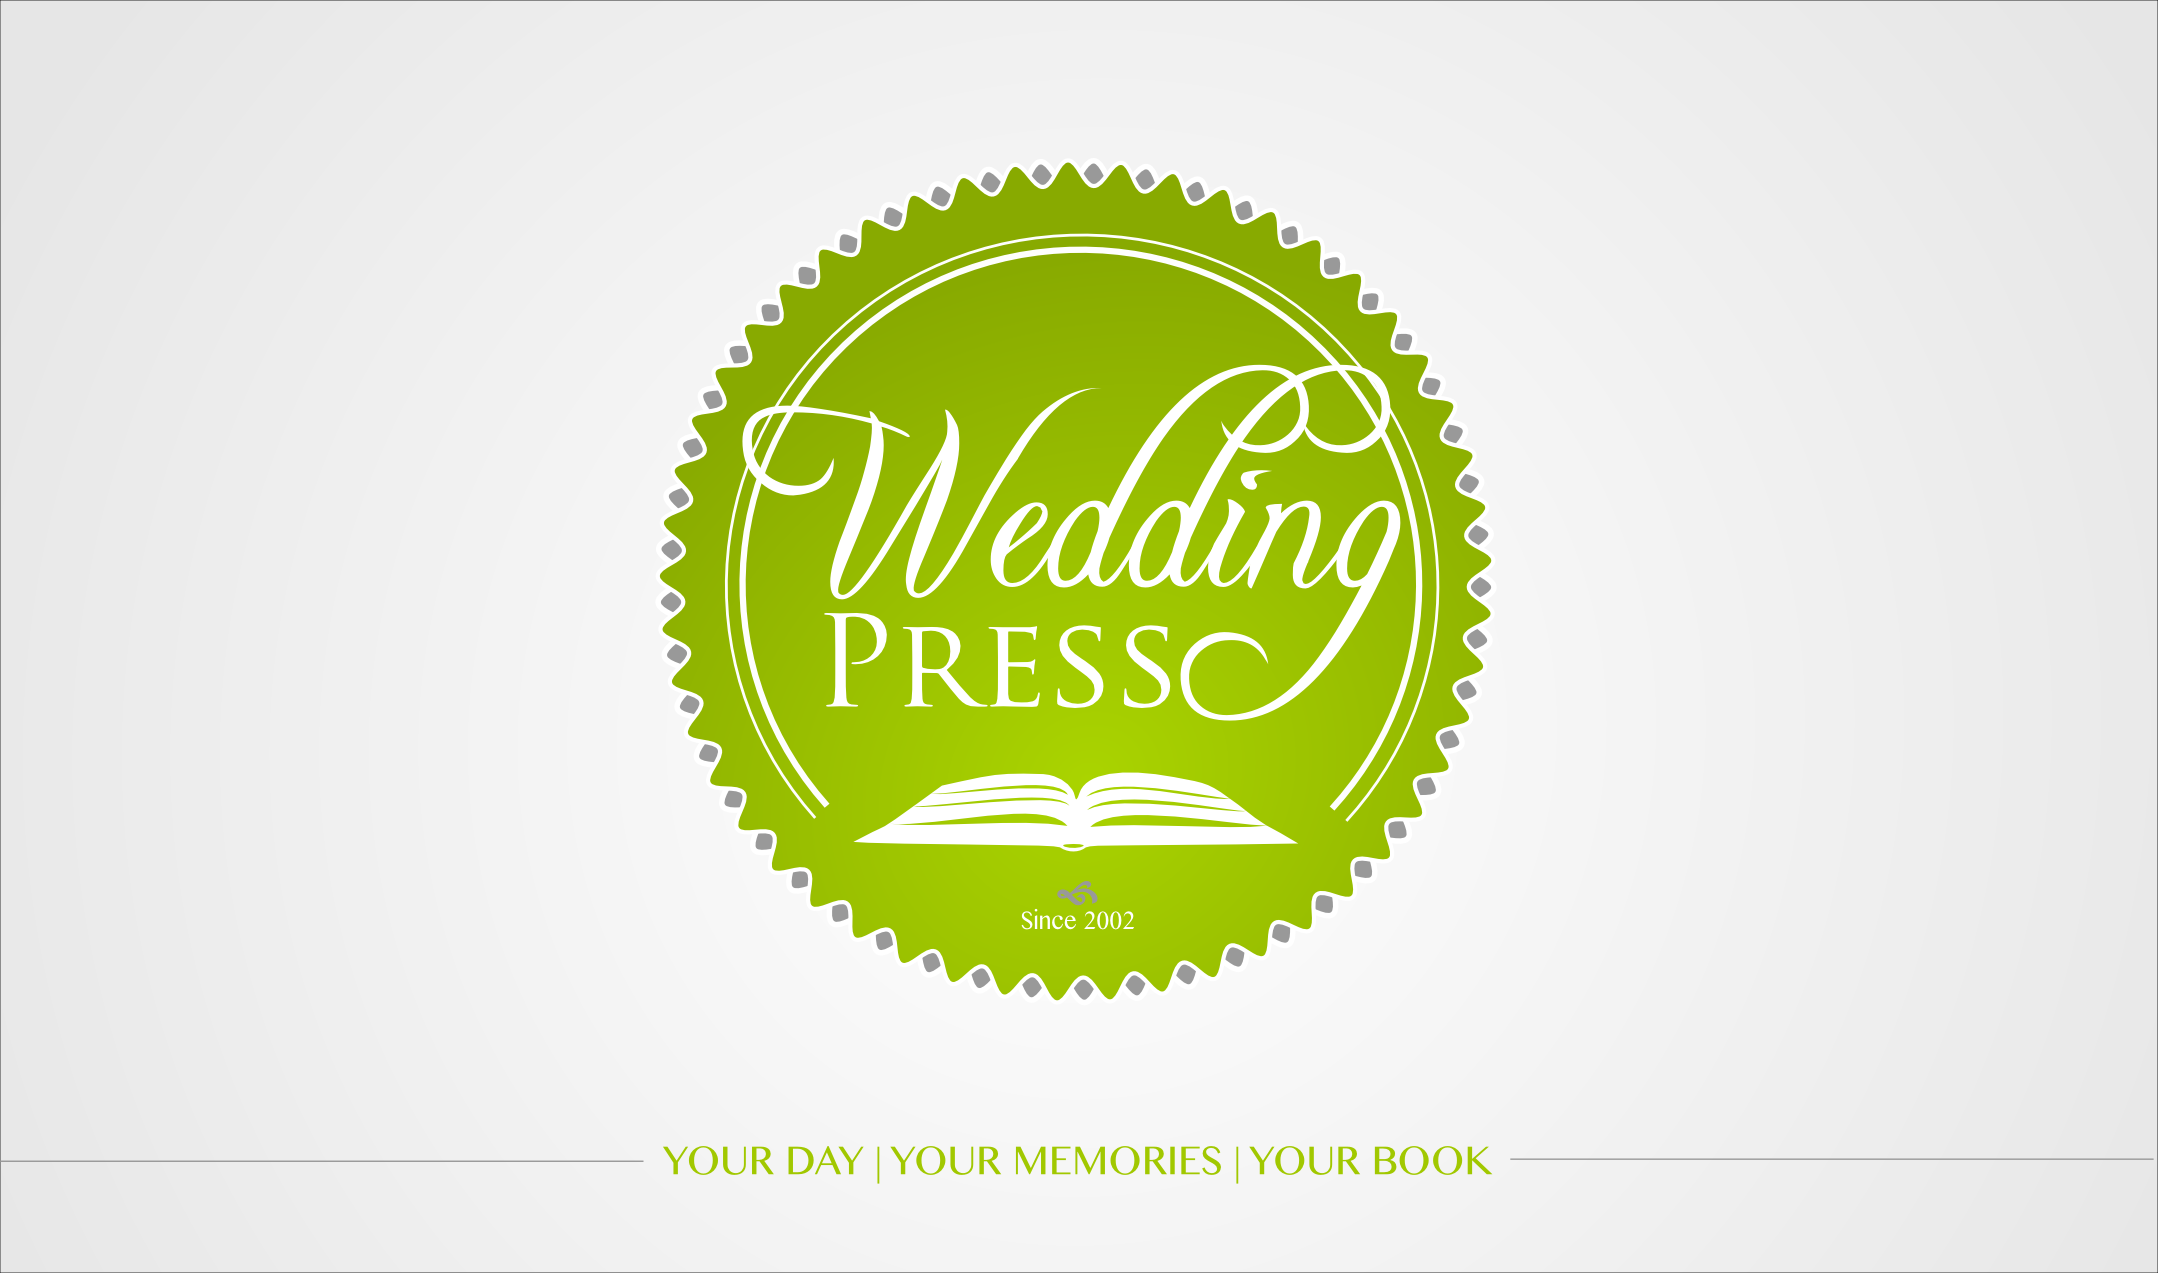 Logo Design by Andrew Bertram - Entry No. 83 in the Logo Design Contest Wedding Writes Logo Design.